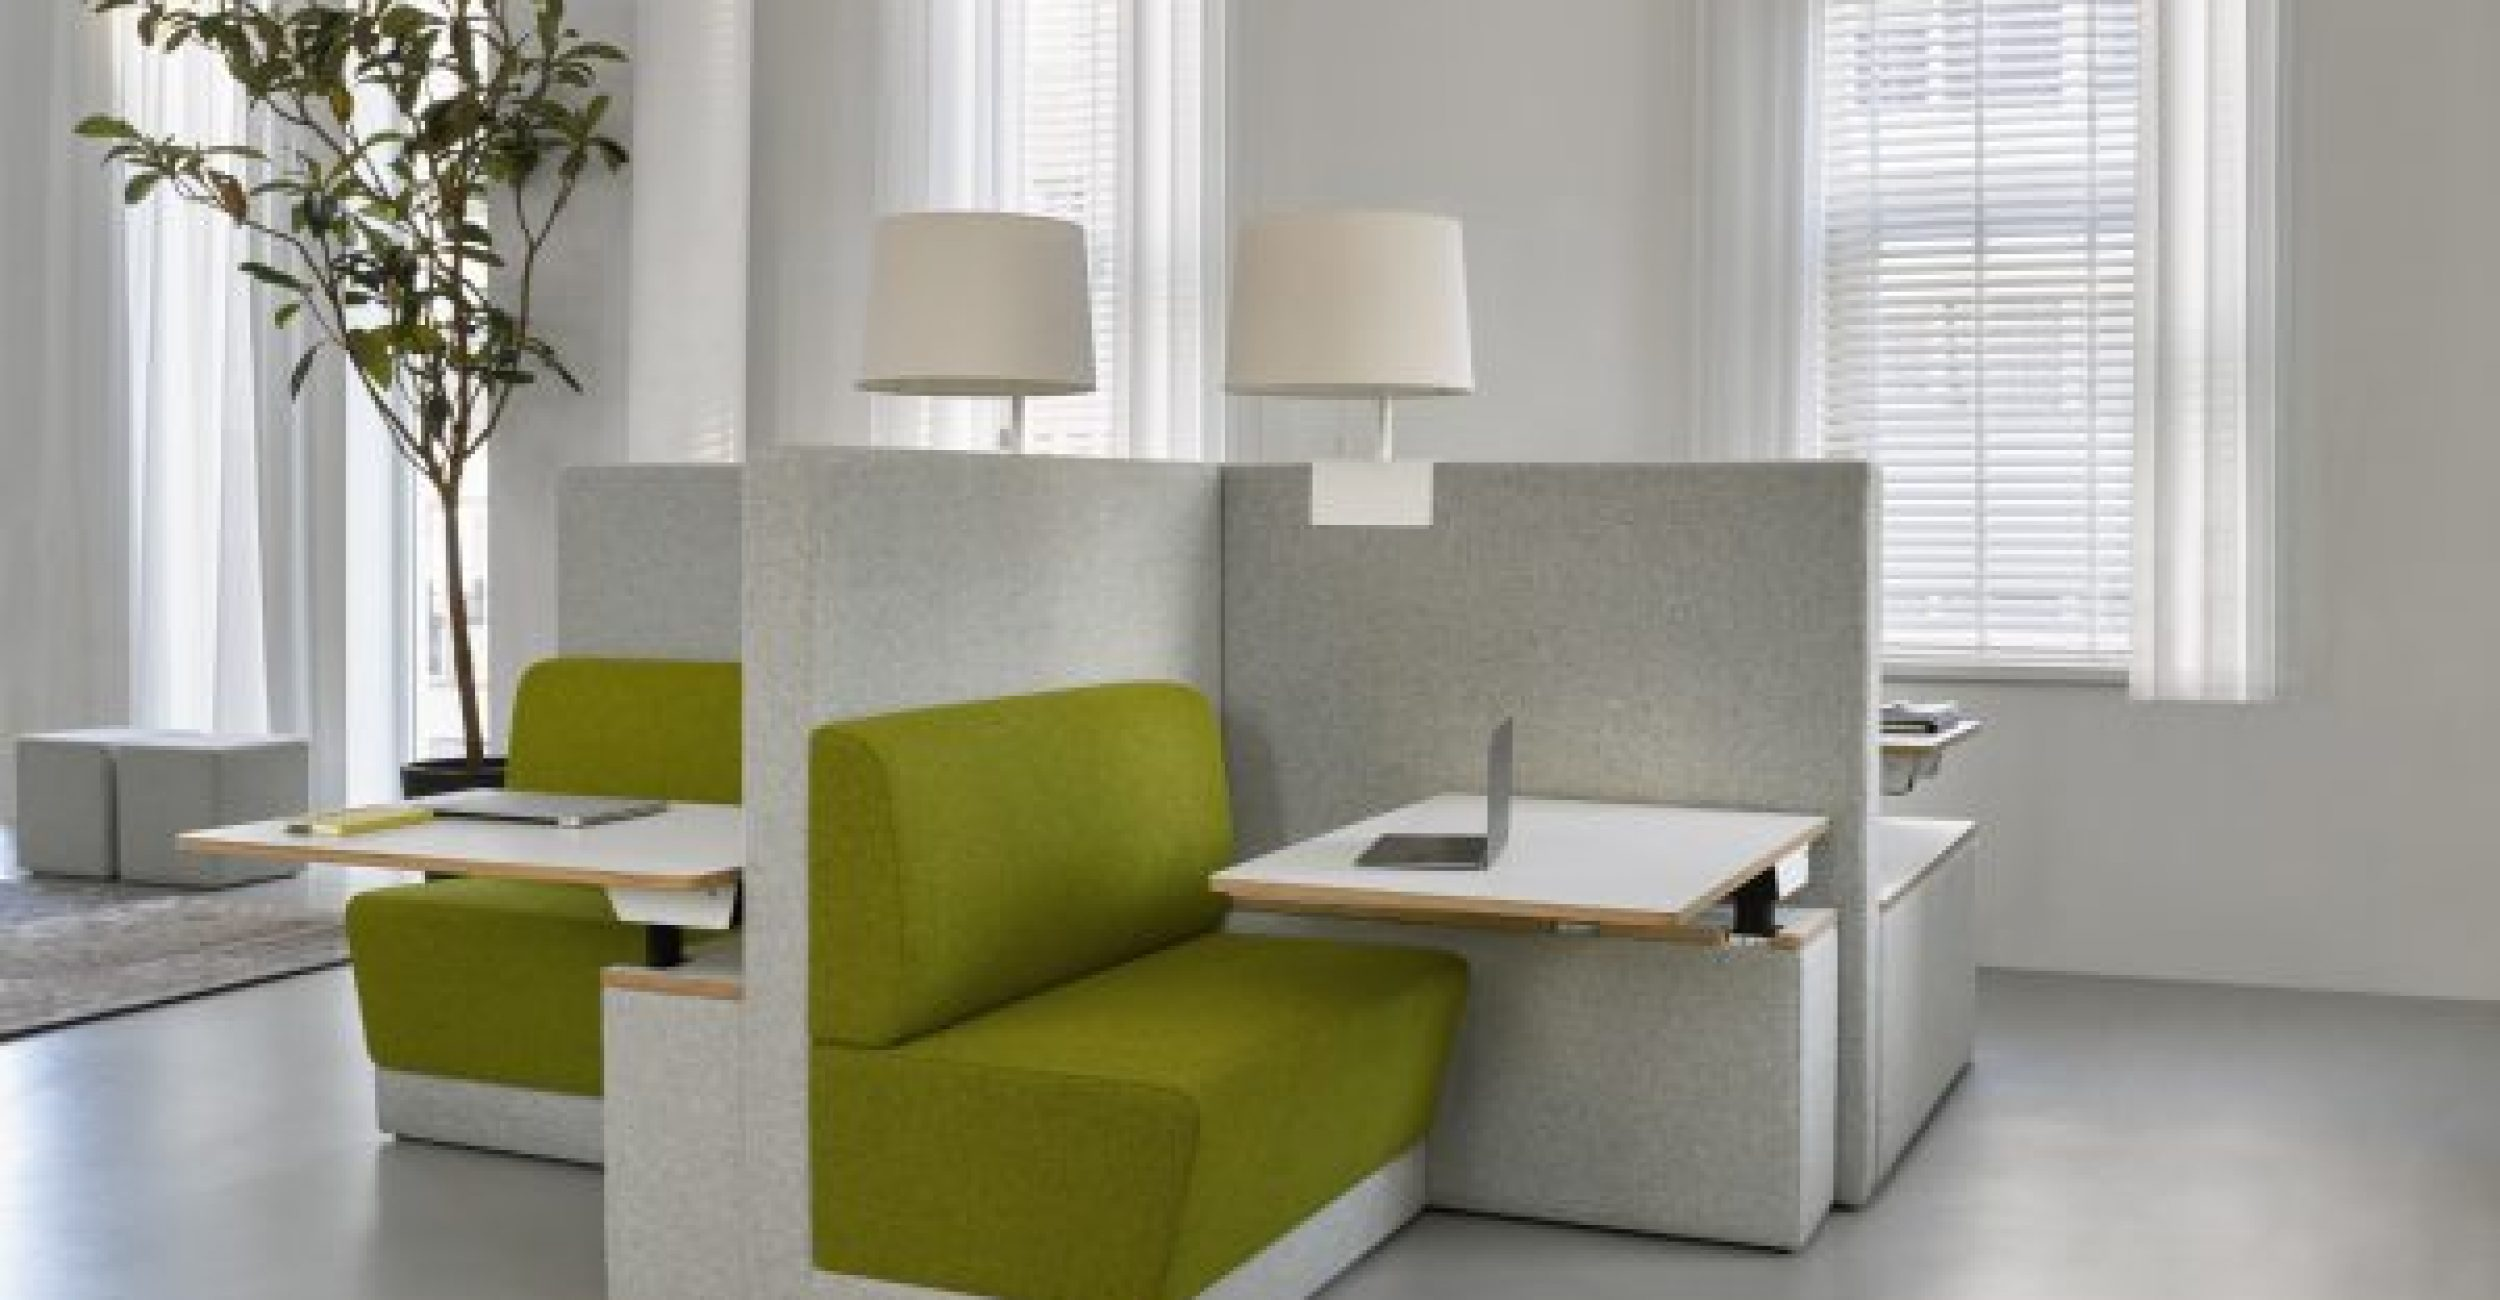 TOOtheLOUNGE-02-600x458